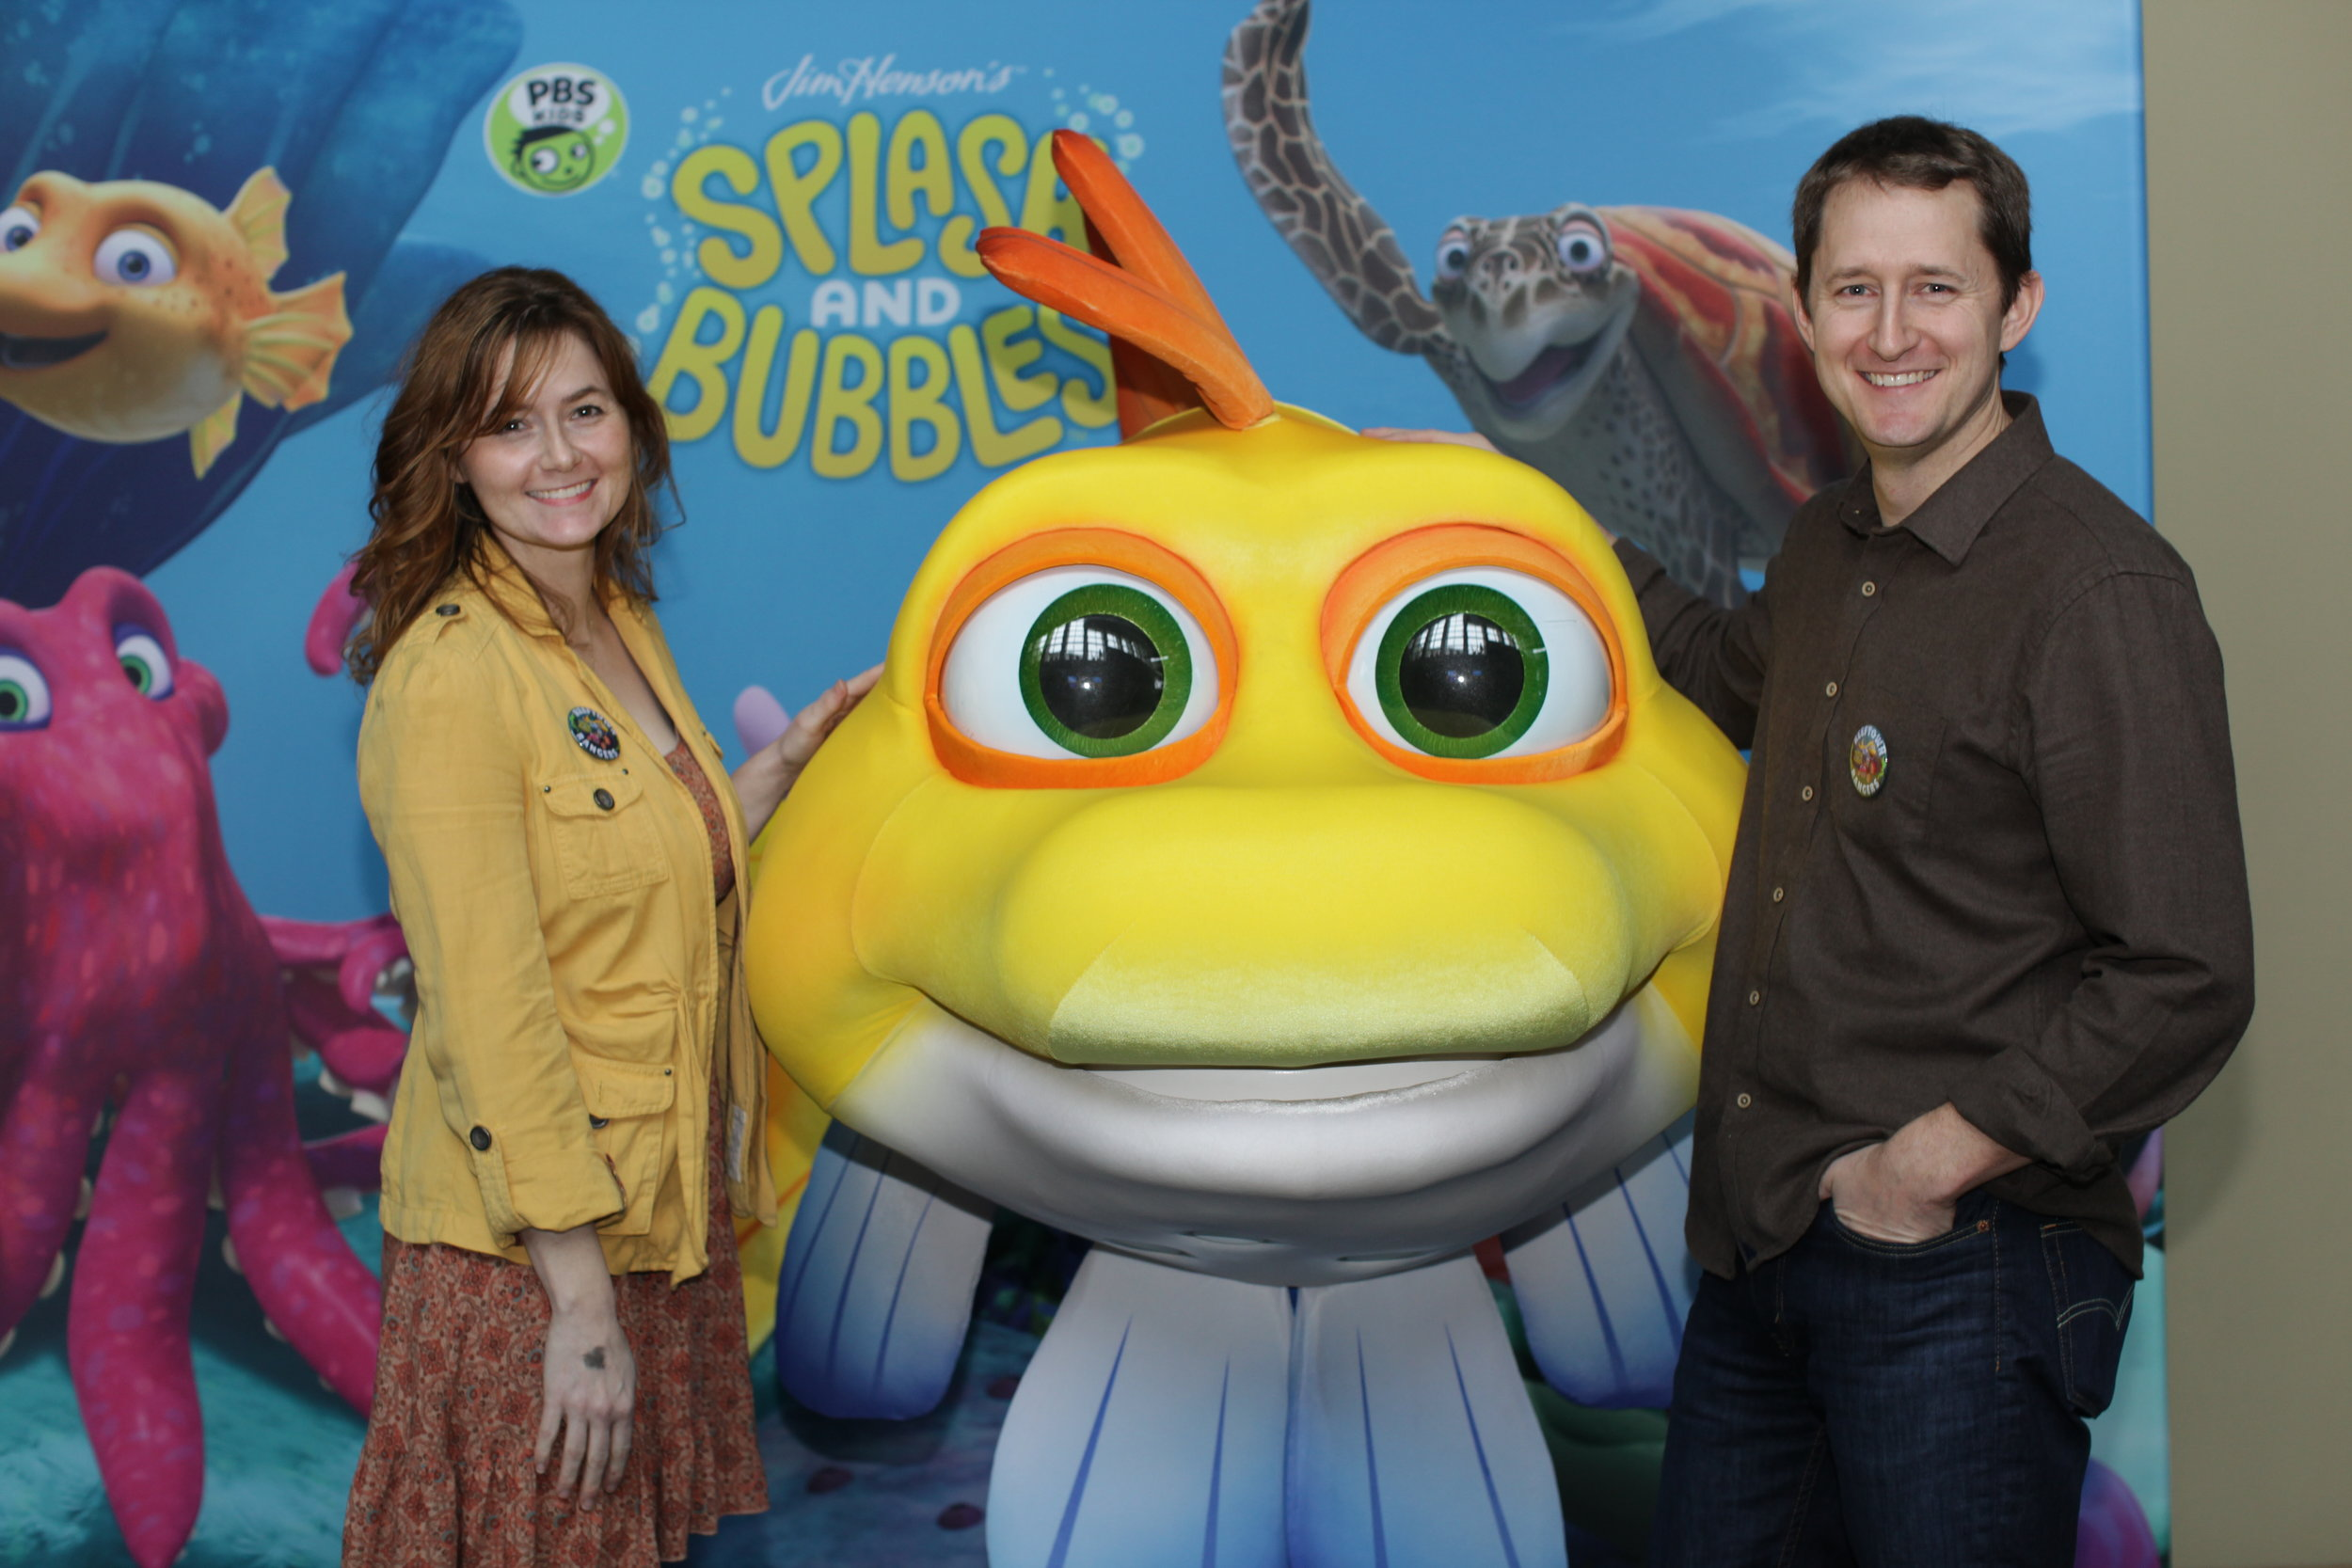 Laura and Robert Sams pose with Splash, from the PBS KIDS series Splash and Bubbles.